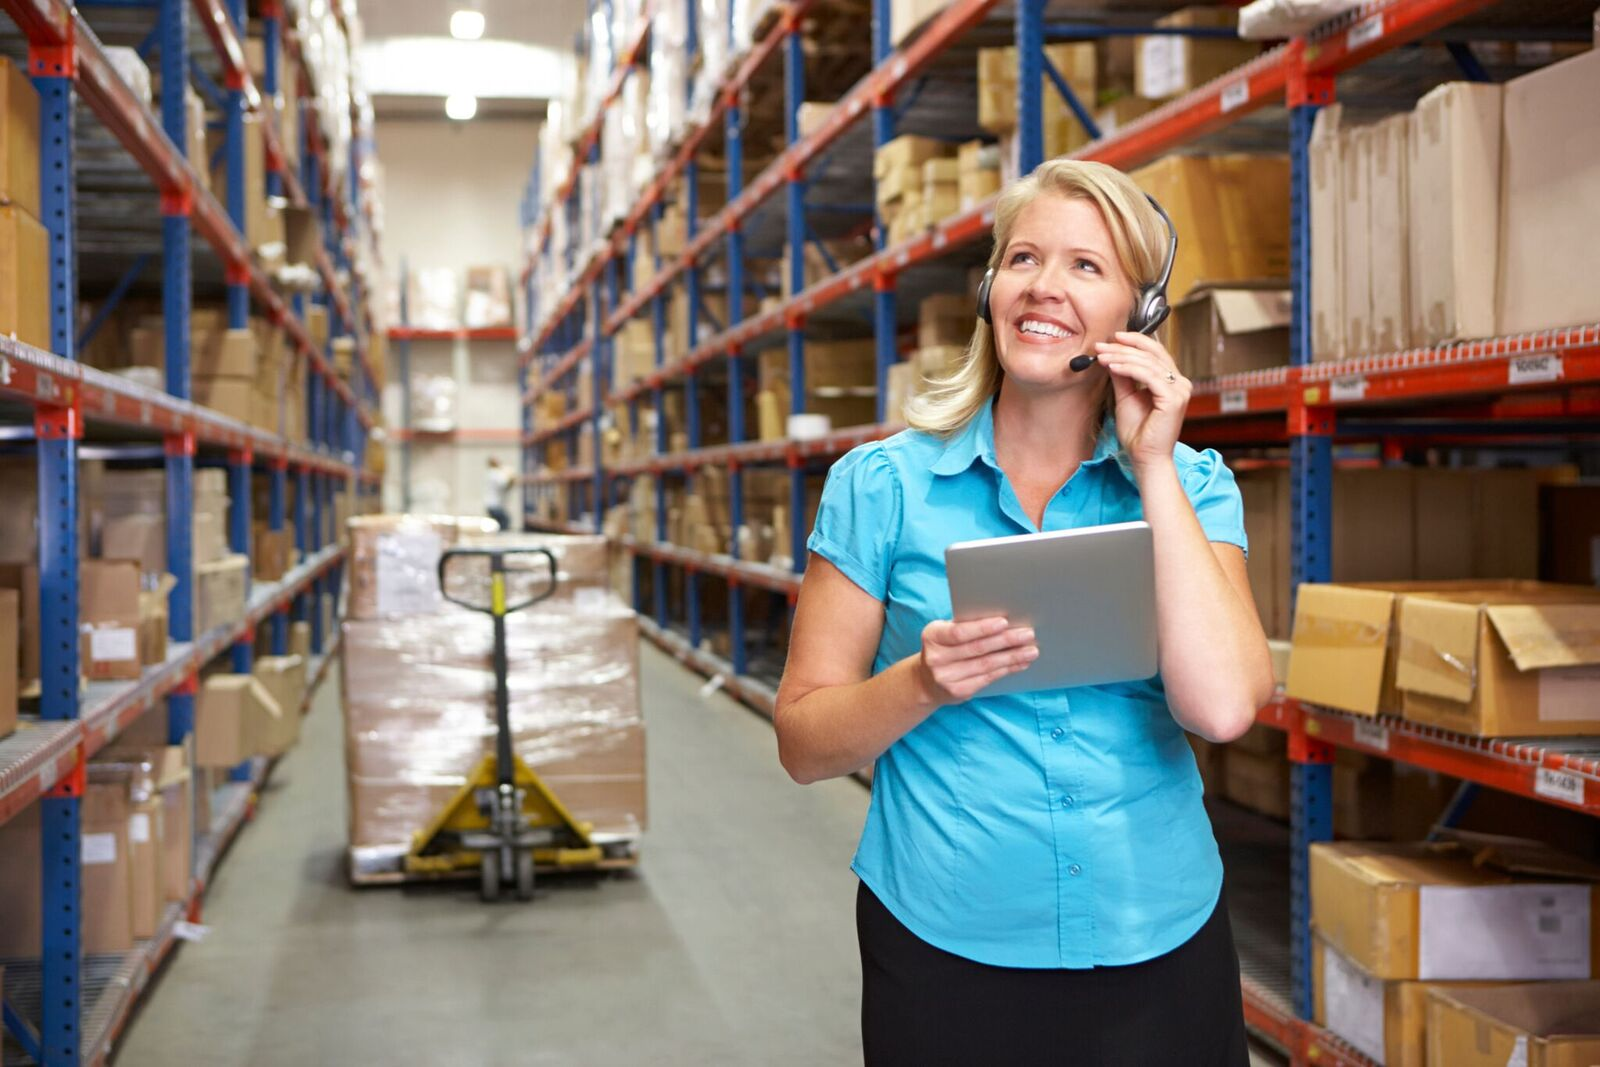 importance of customer service skills, austin employment agency, staff force, woman on phone in warehouse